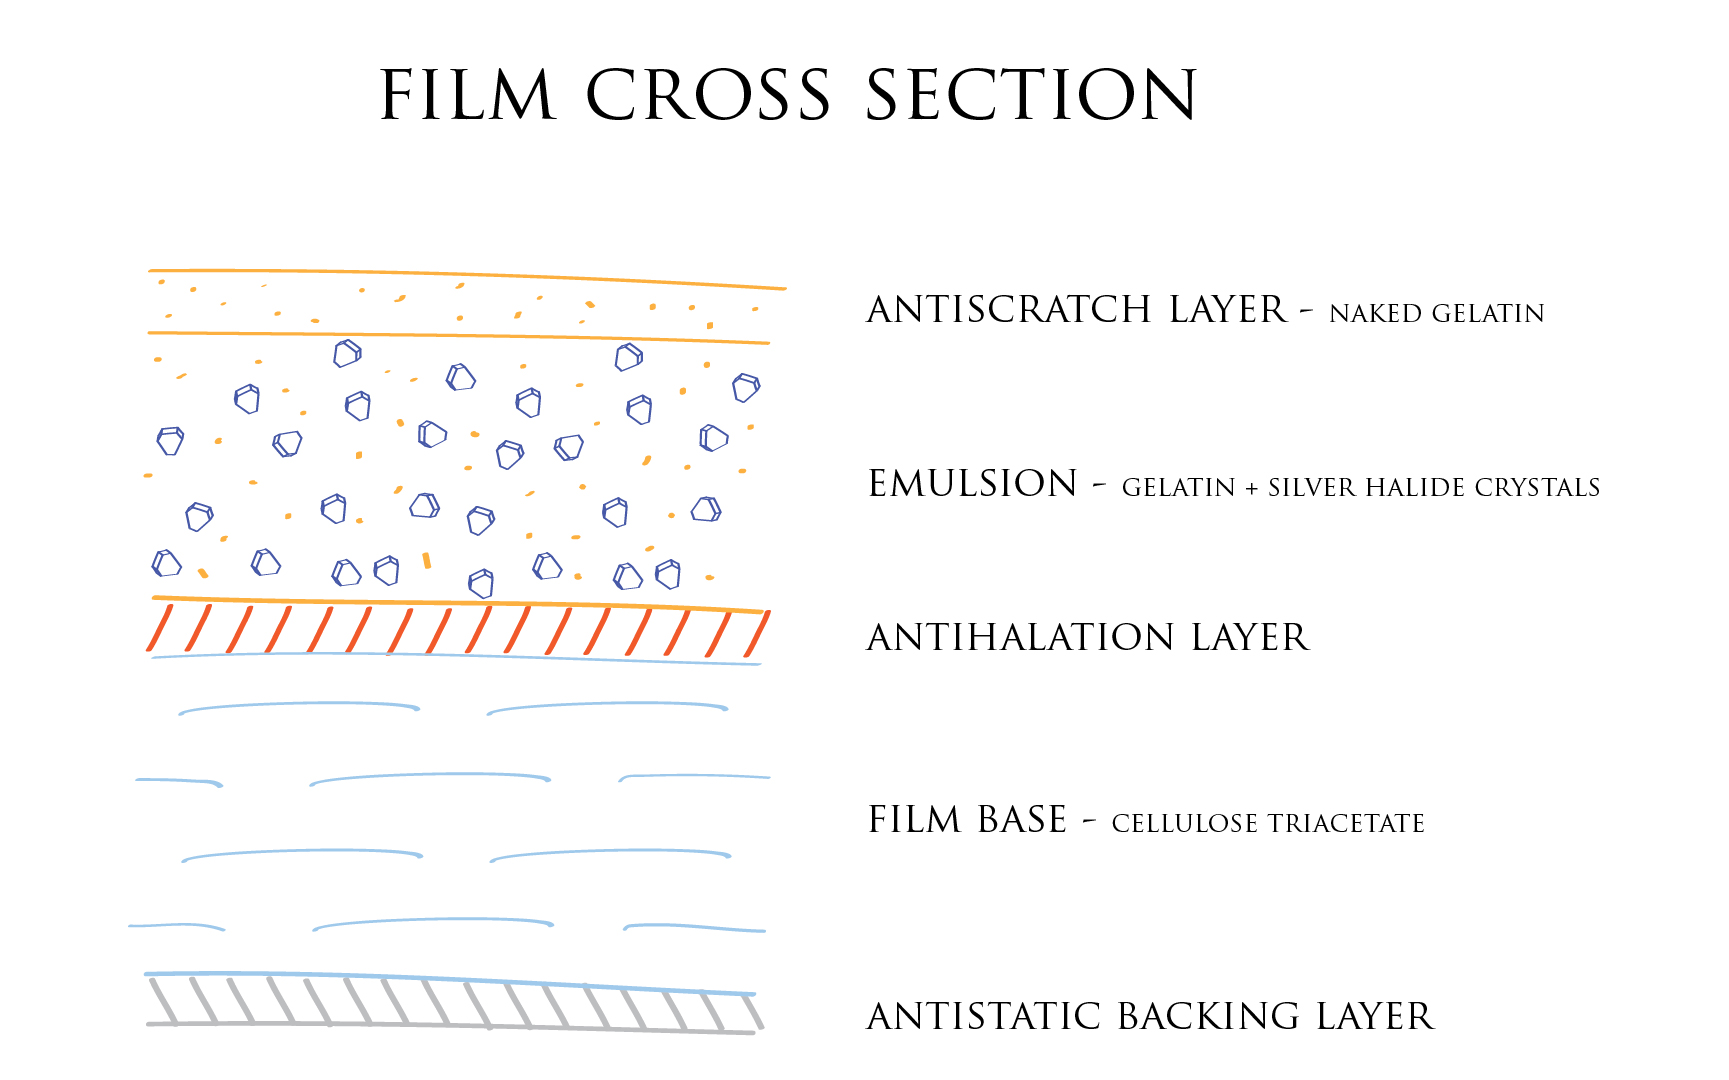 Illustration photographic film cross section